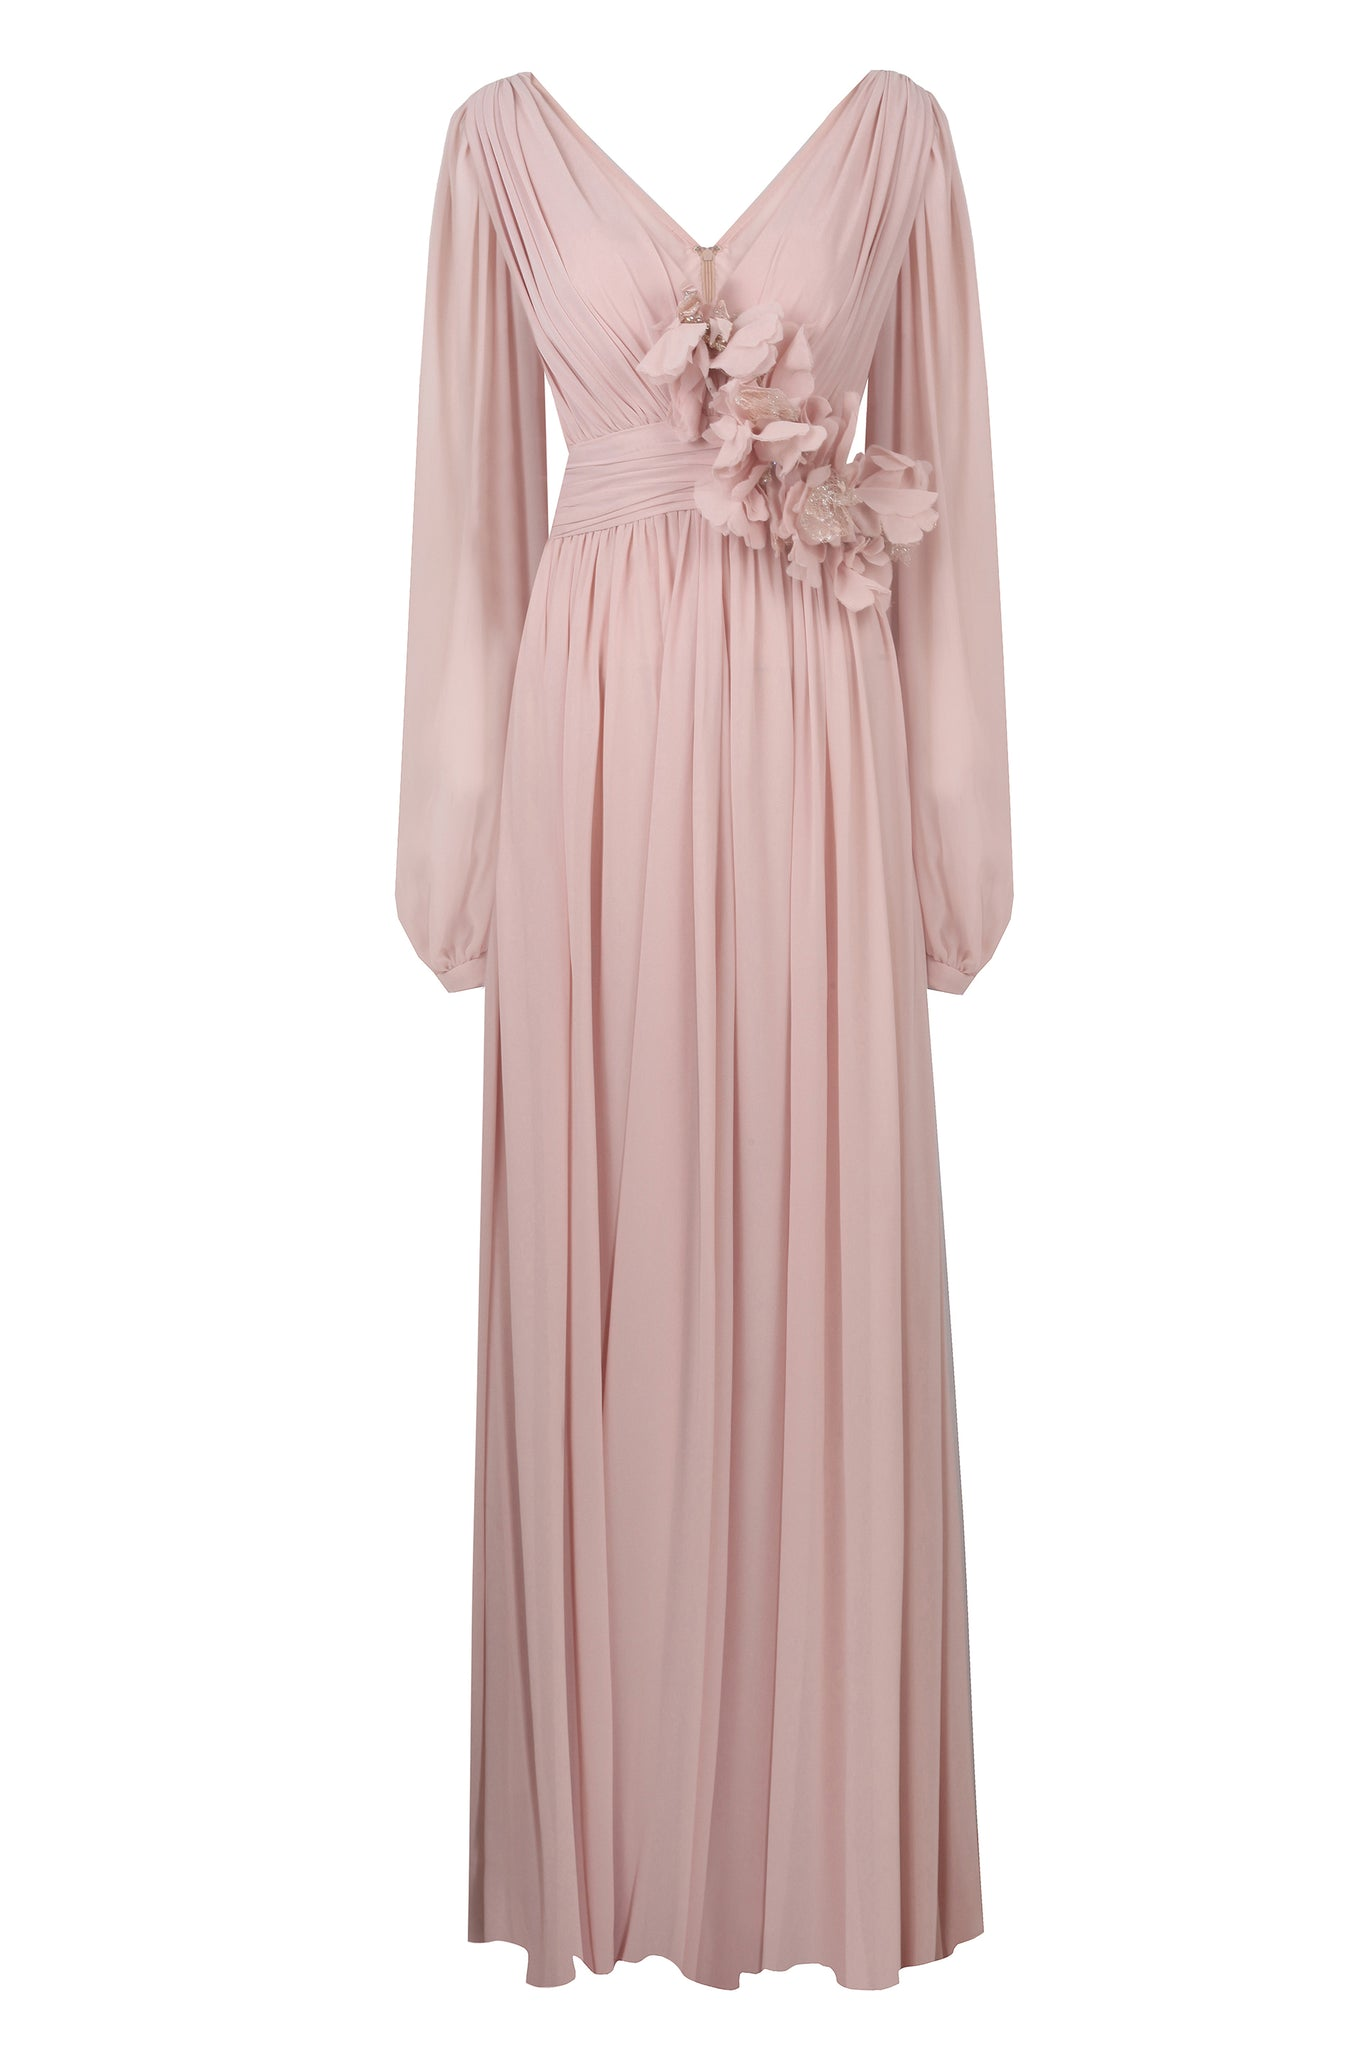 HANDMADE FLOWER DETAILS HIGH SILKY CHIFFON LONG DRESS